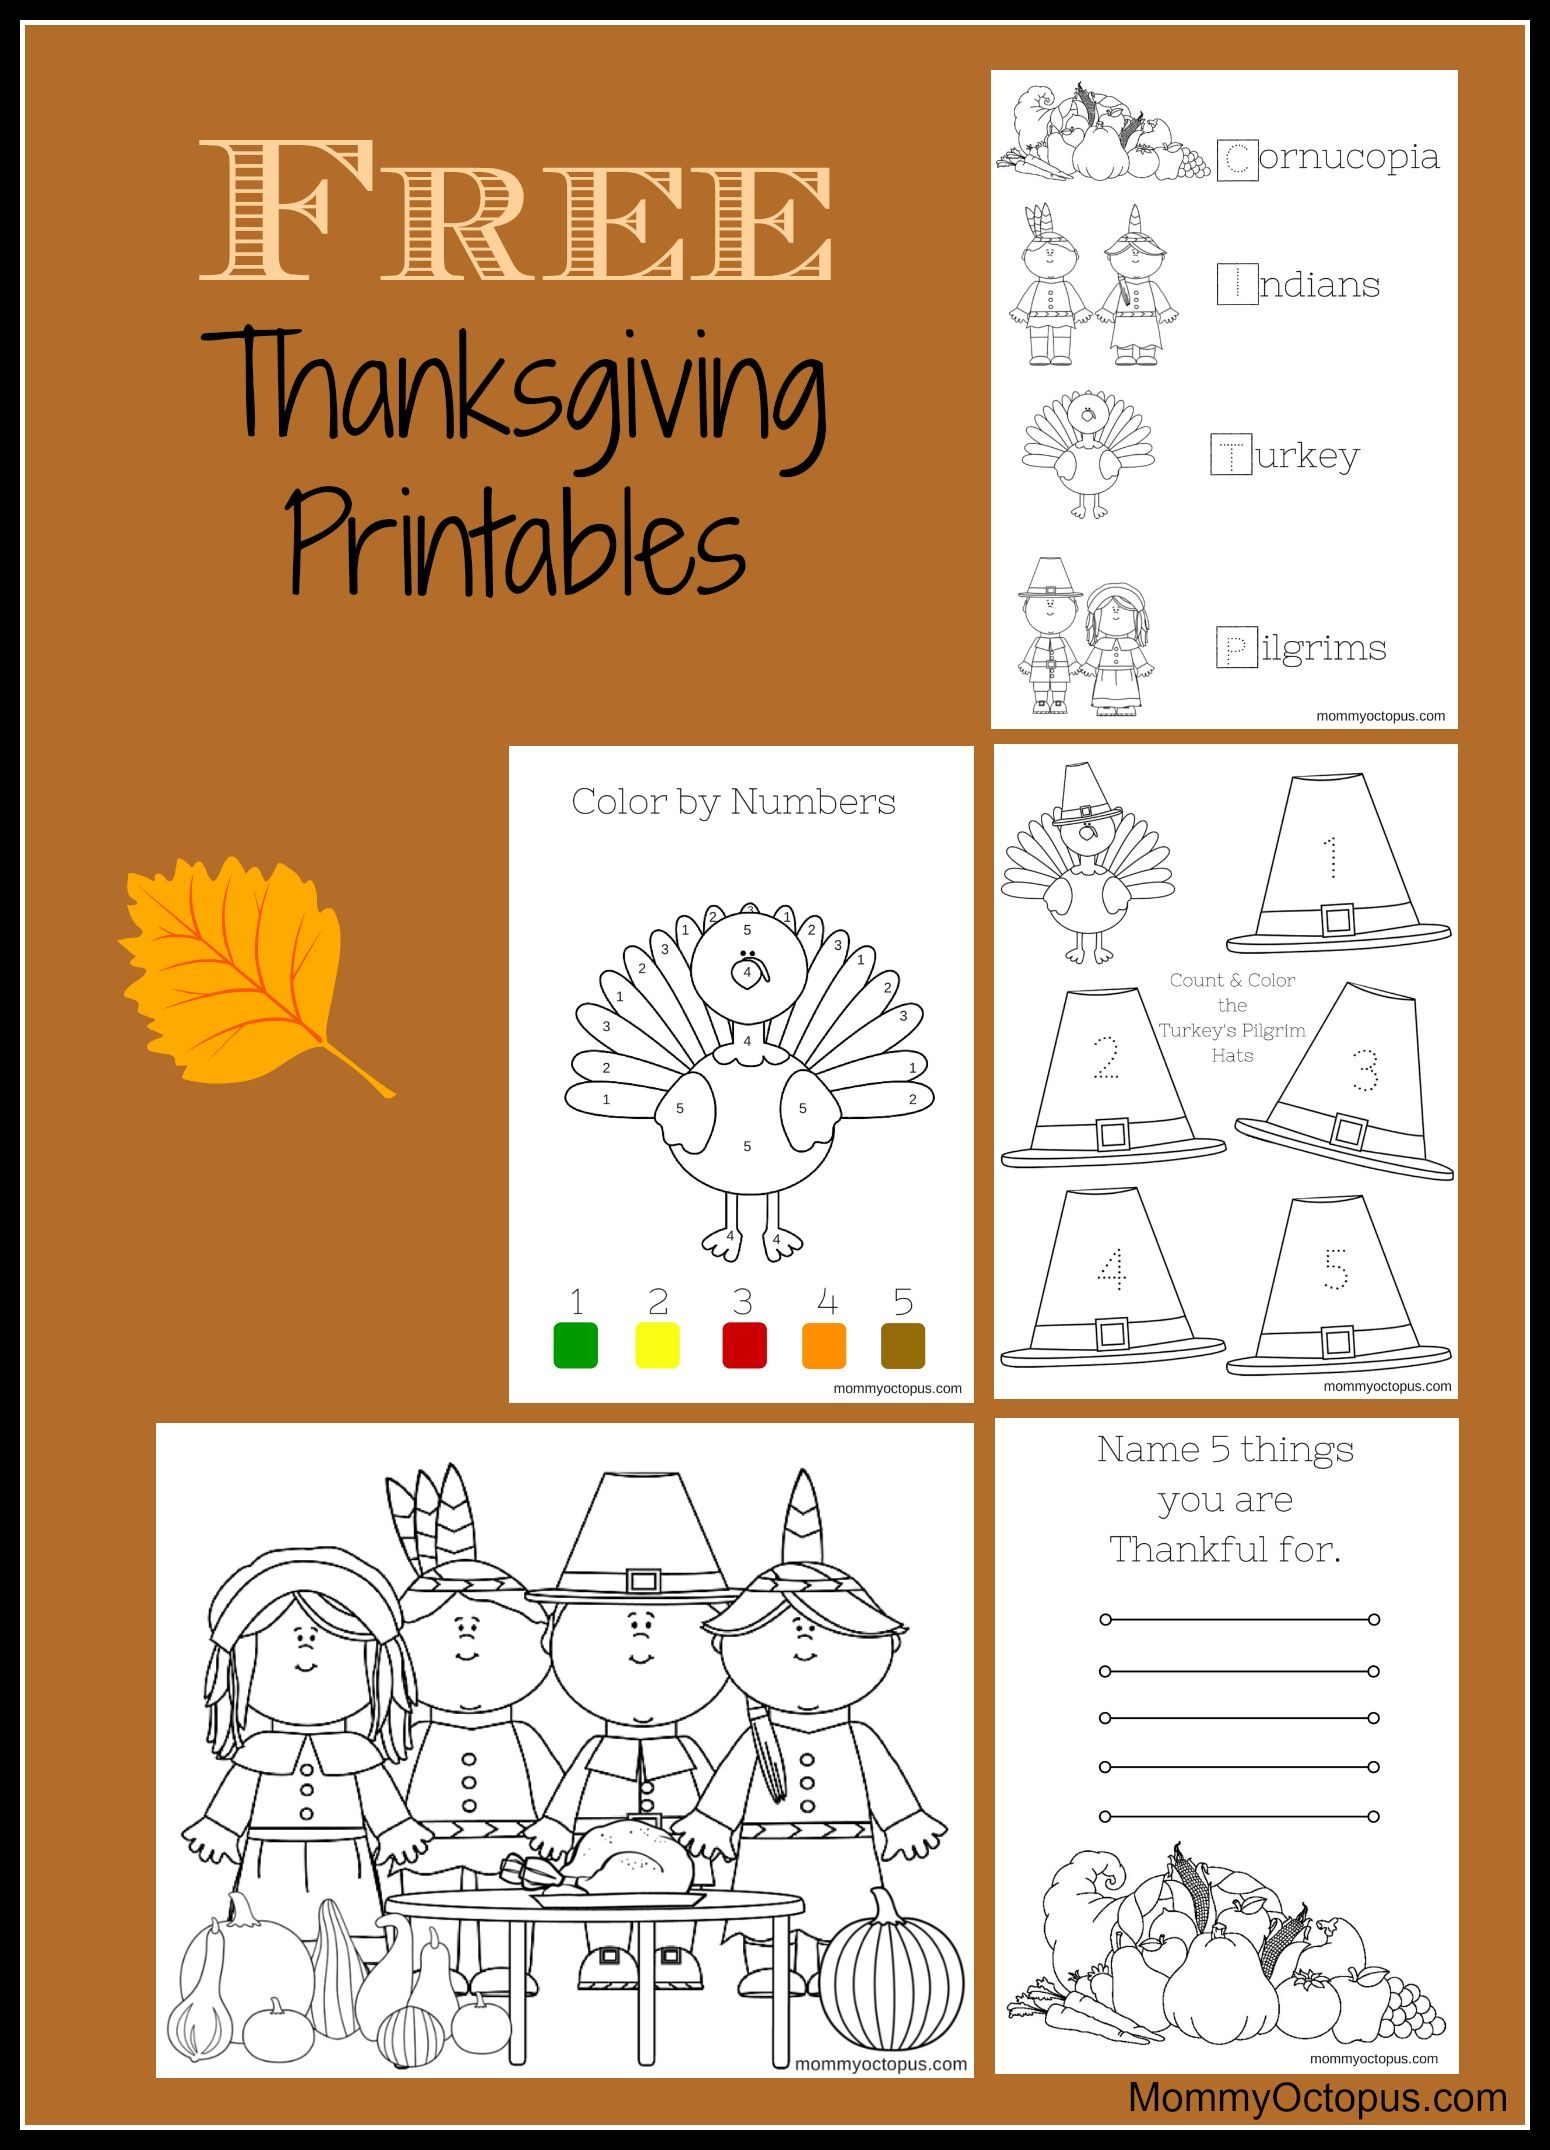 Free Thanksgiving Printable Activity Sheets! | Thanksgiving & Fall - Free Printable Kindergarten Thanksgiving Activities